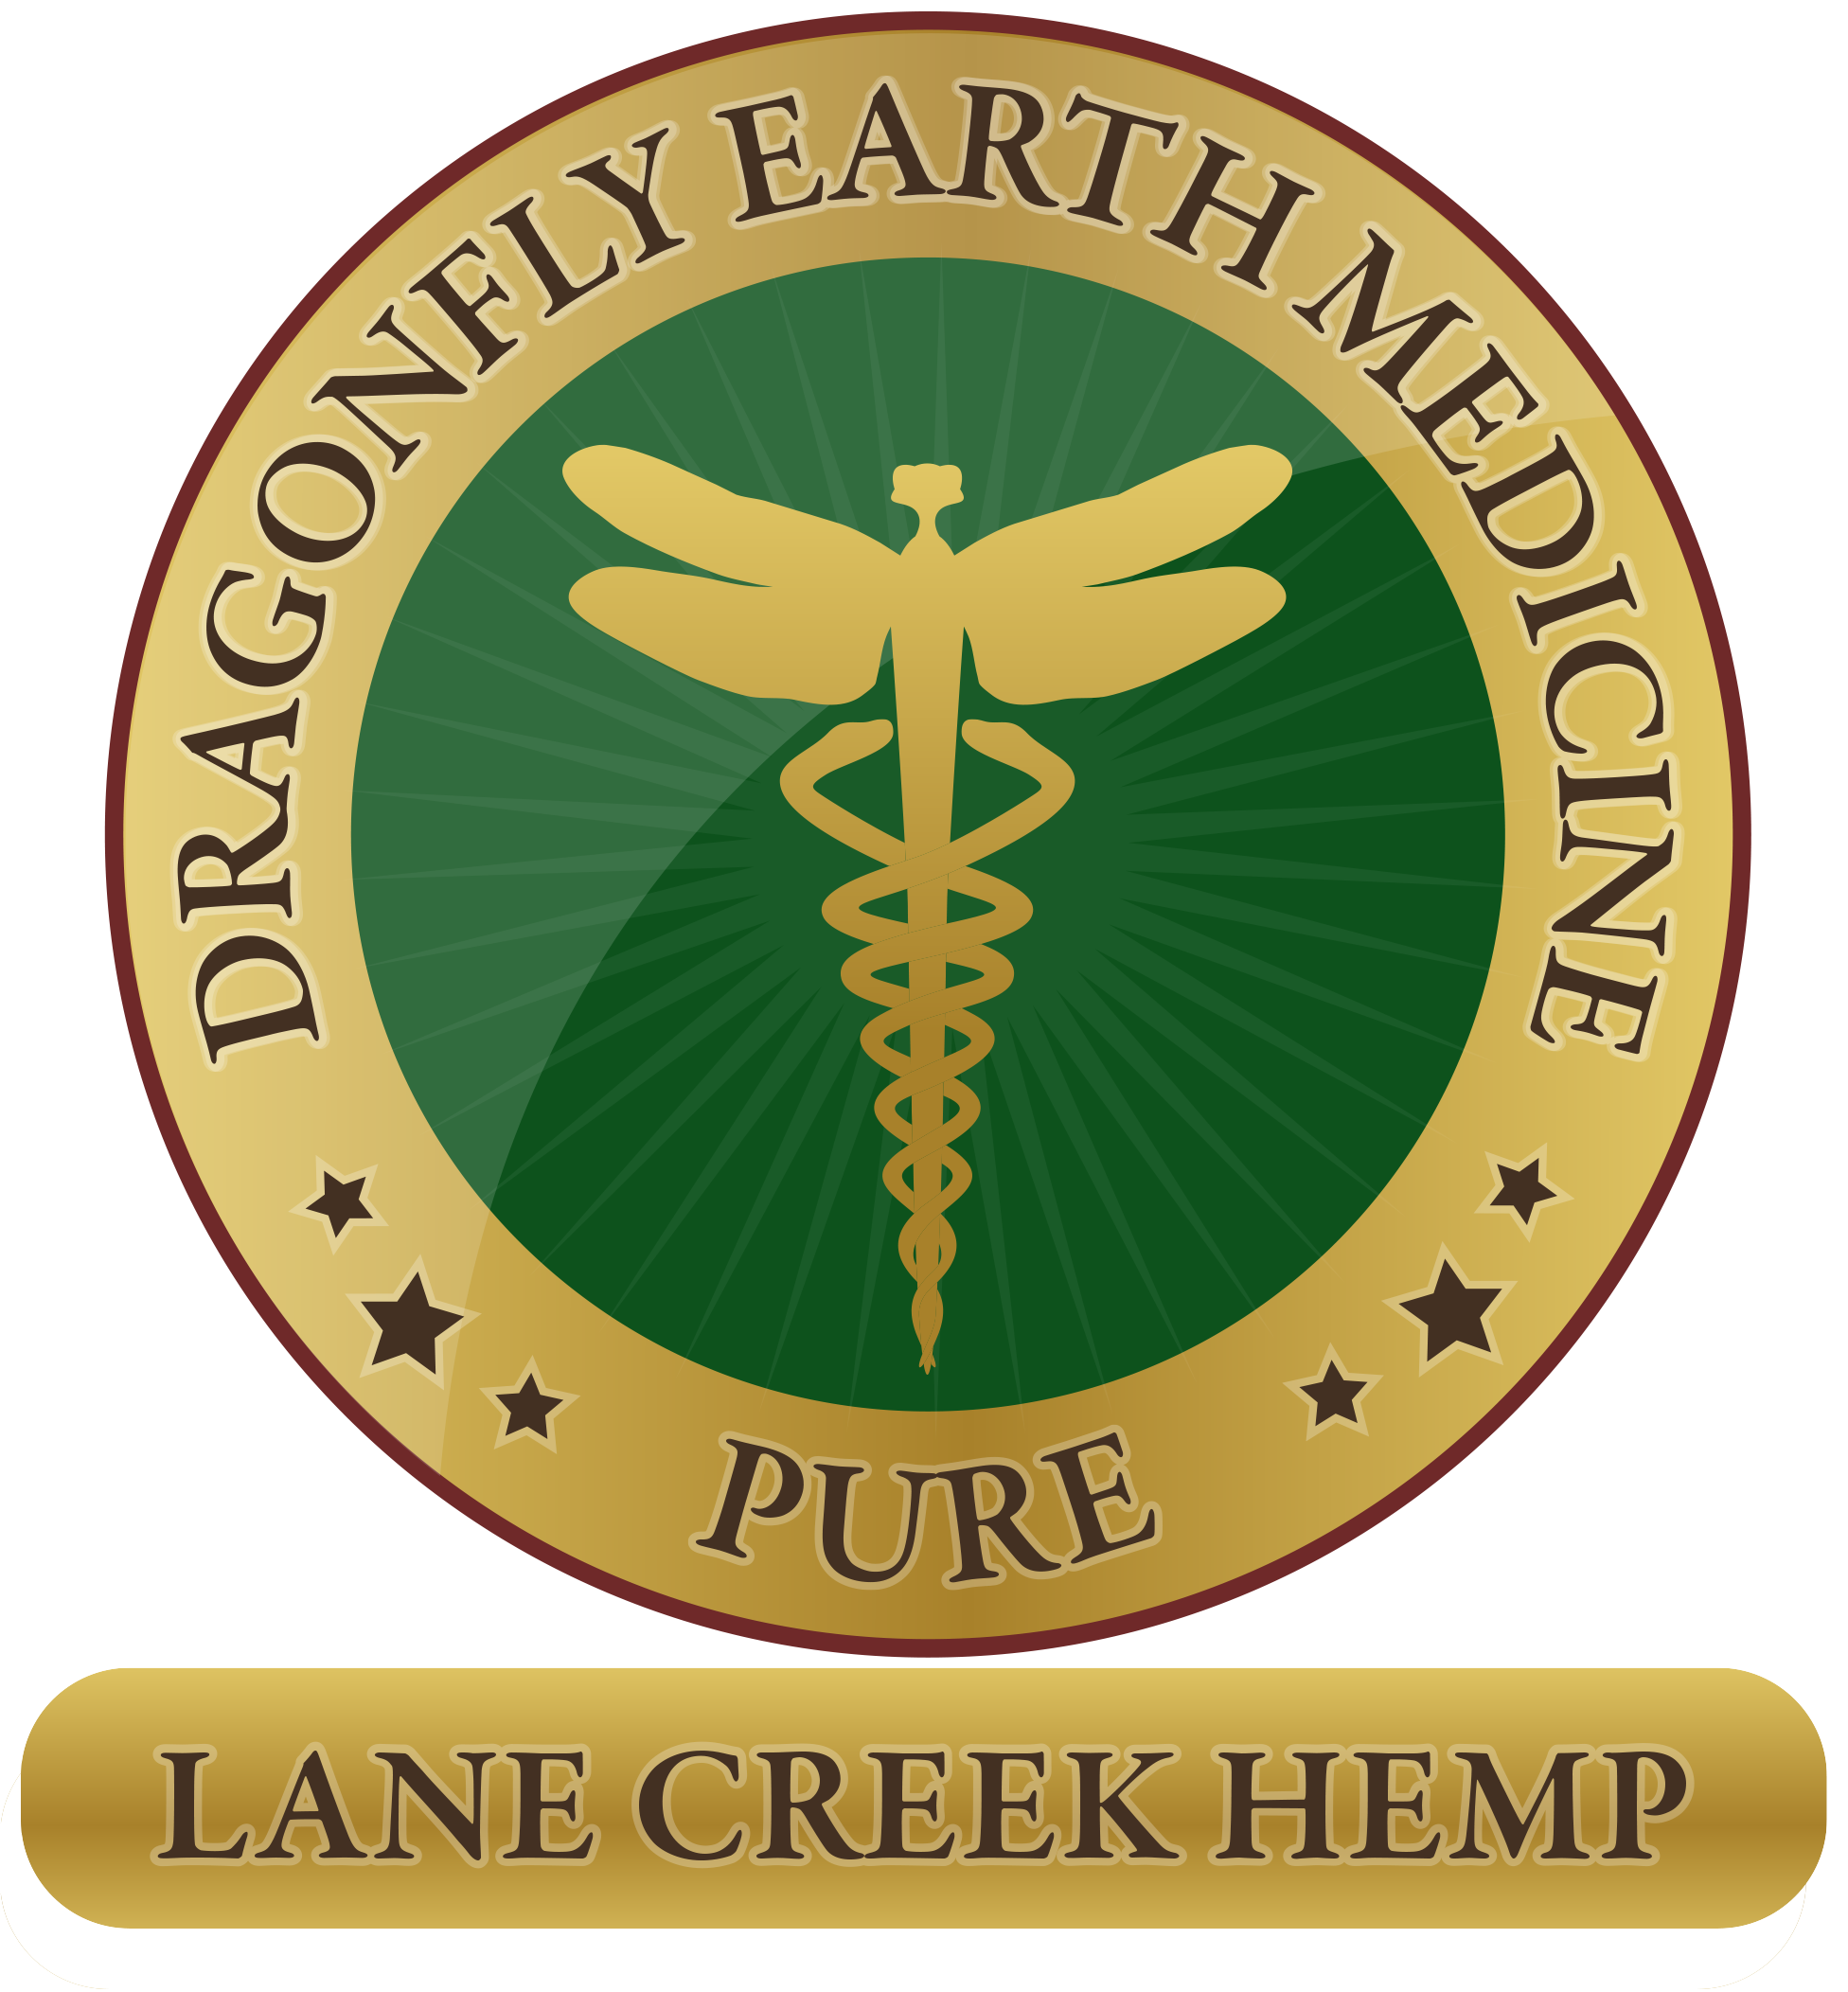 Lane Creek Hemp Co is DEMPure Certified